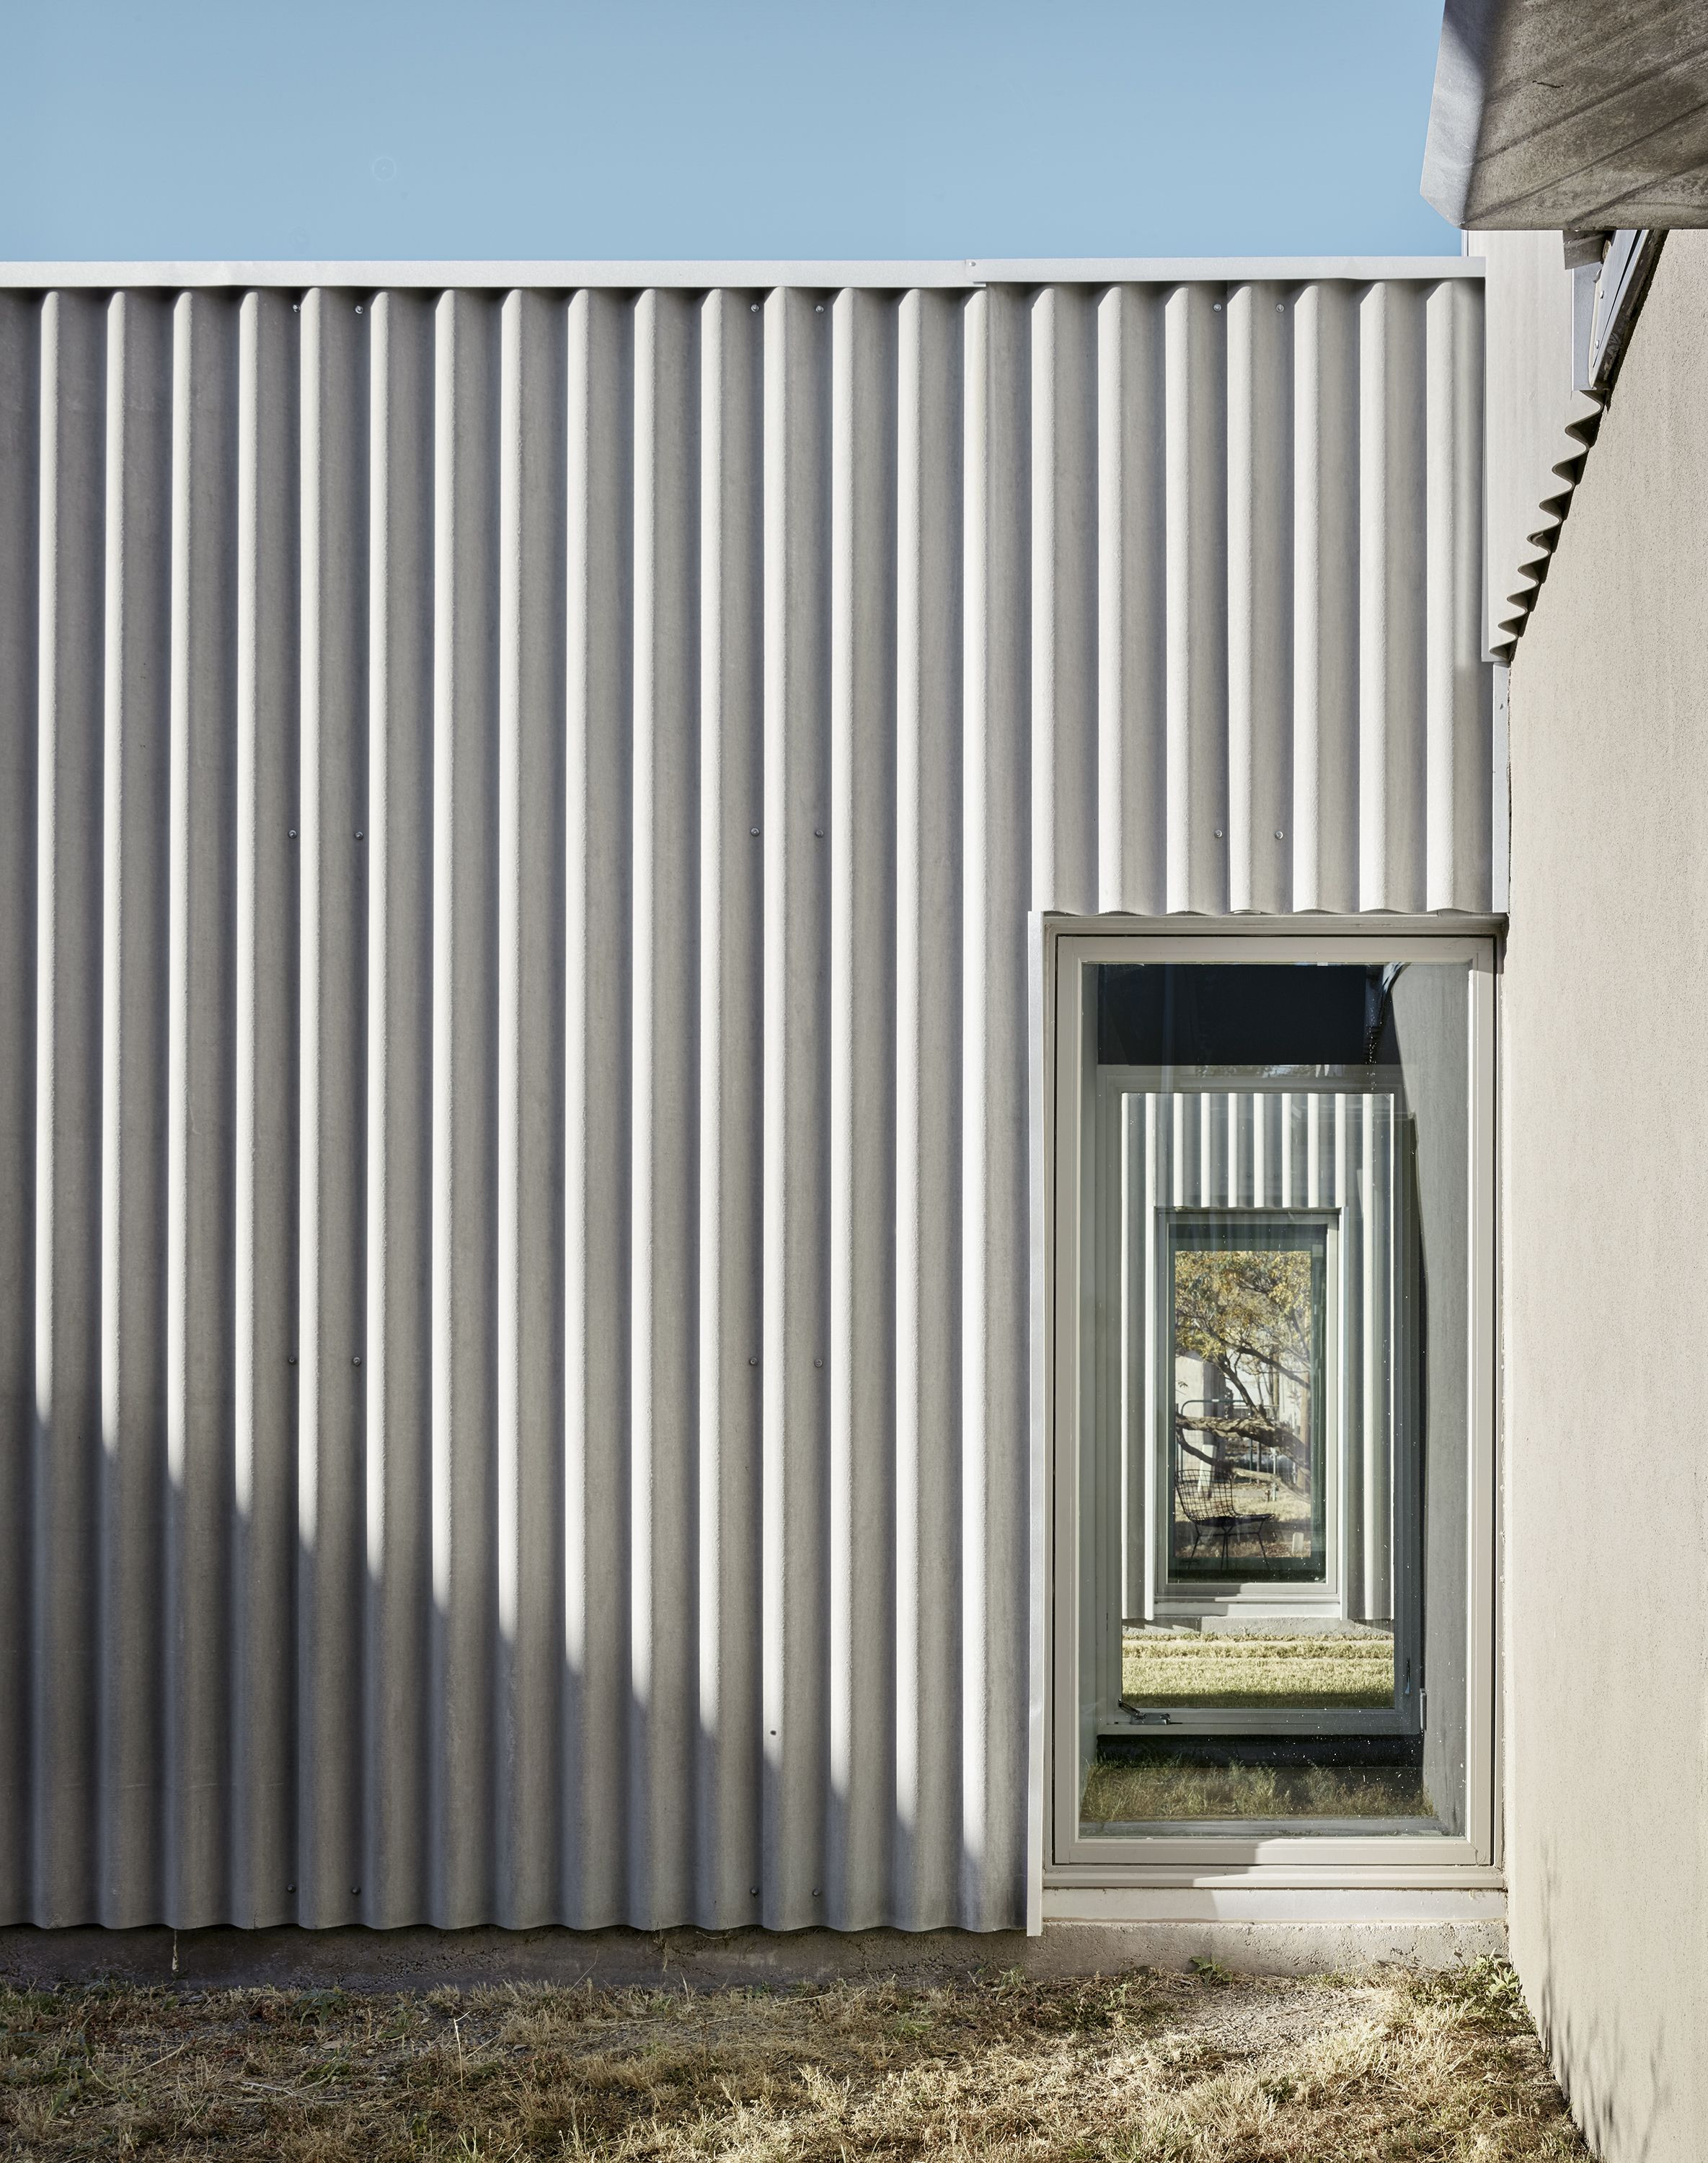 Corrugated Fiber Cement From Marley Eternit Architecture Adobe House House Cladding